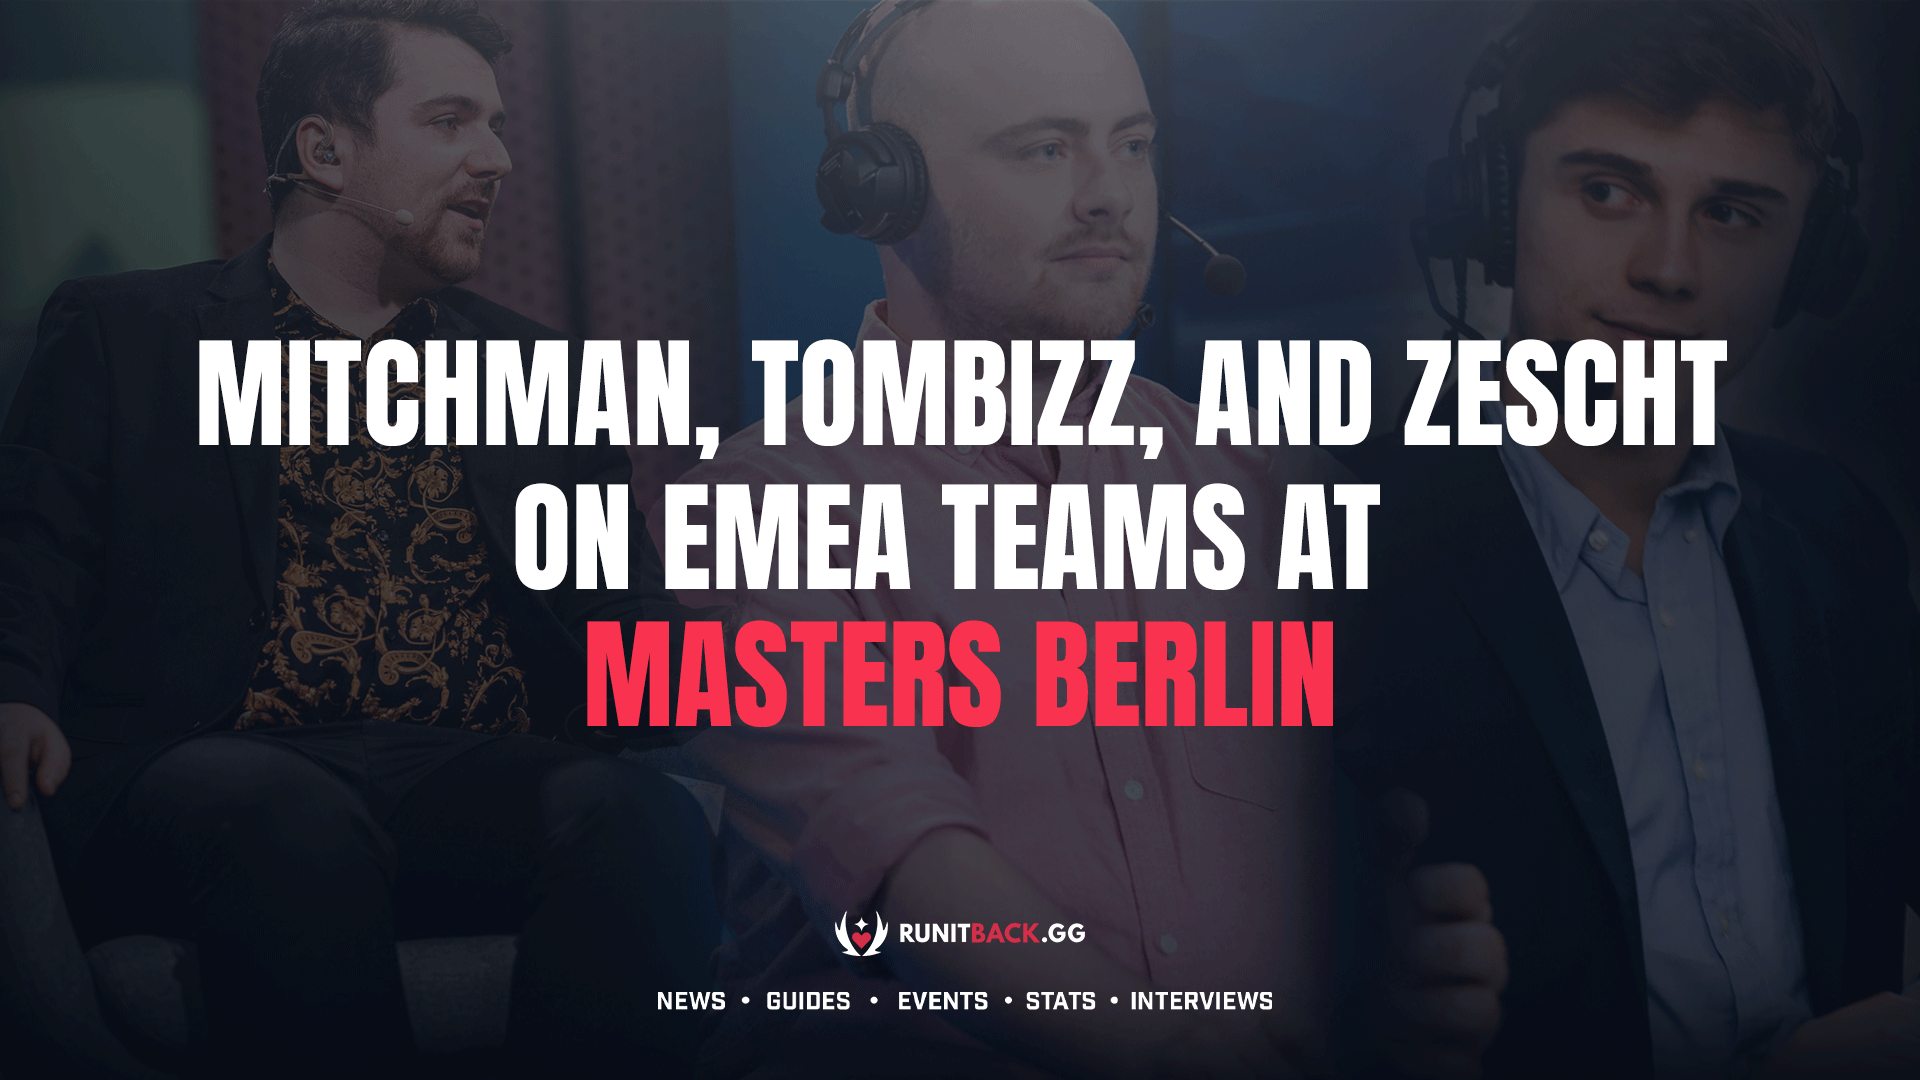 MitchMan, Tombizz, and Zescht on EMEA teams at Masters Berlin